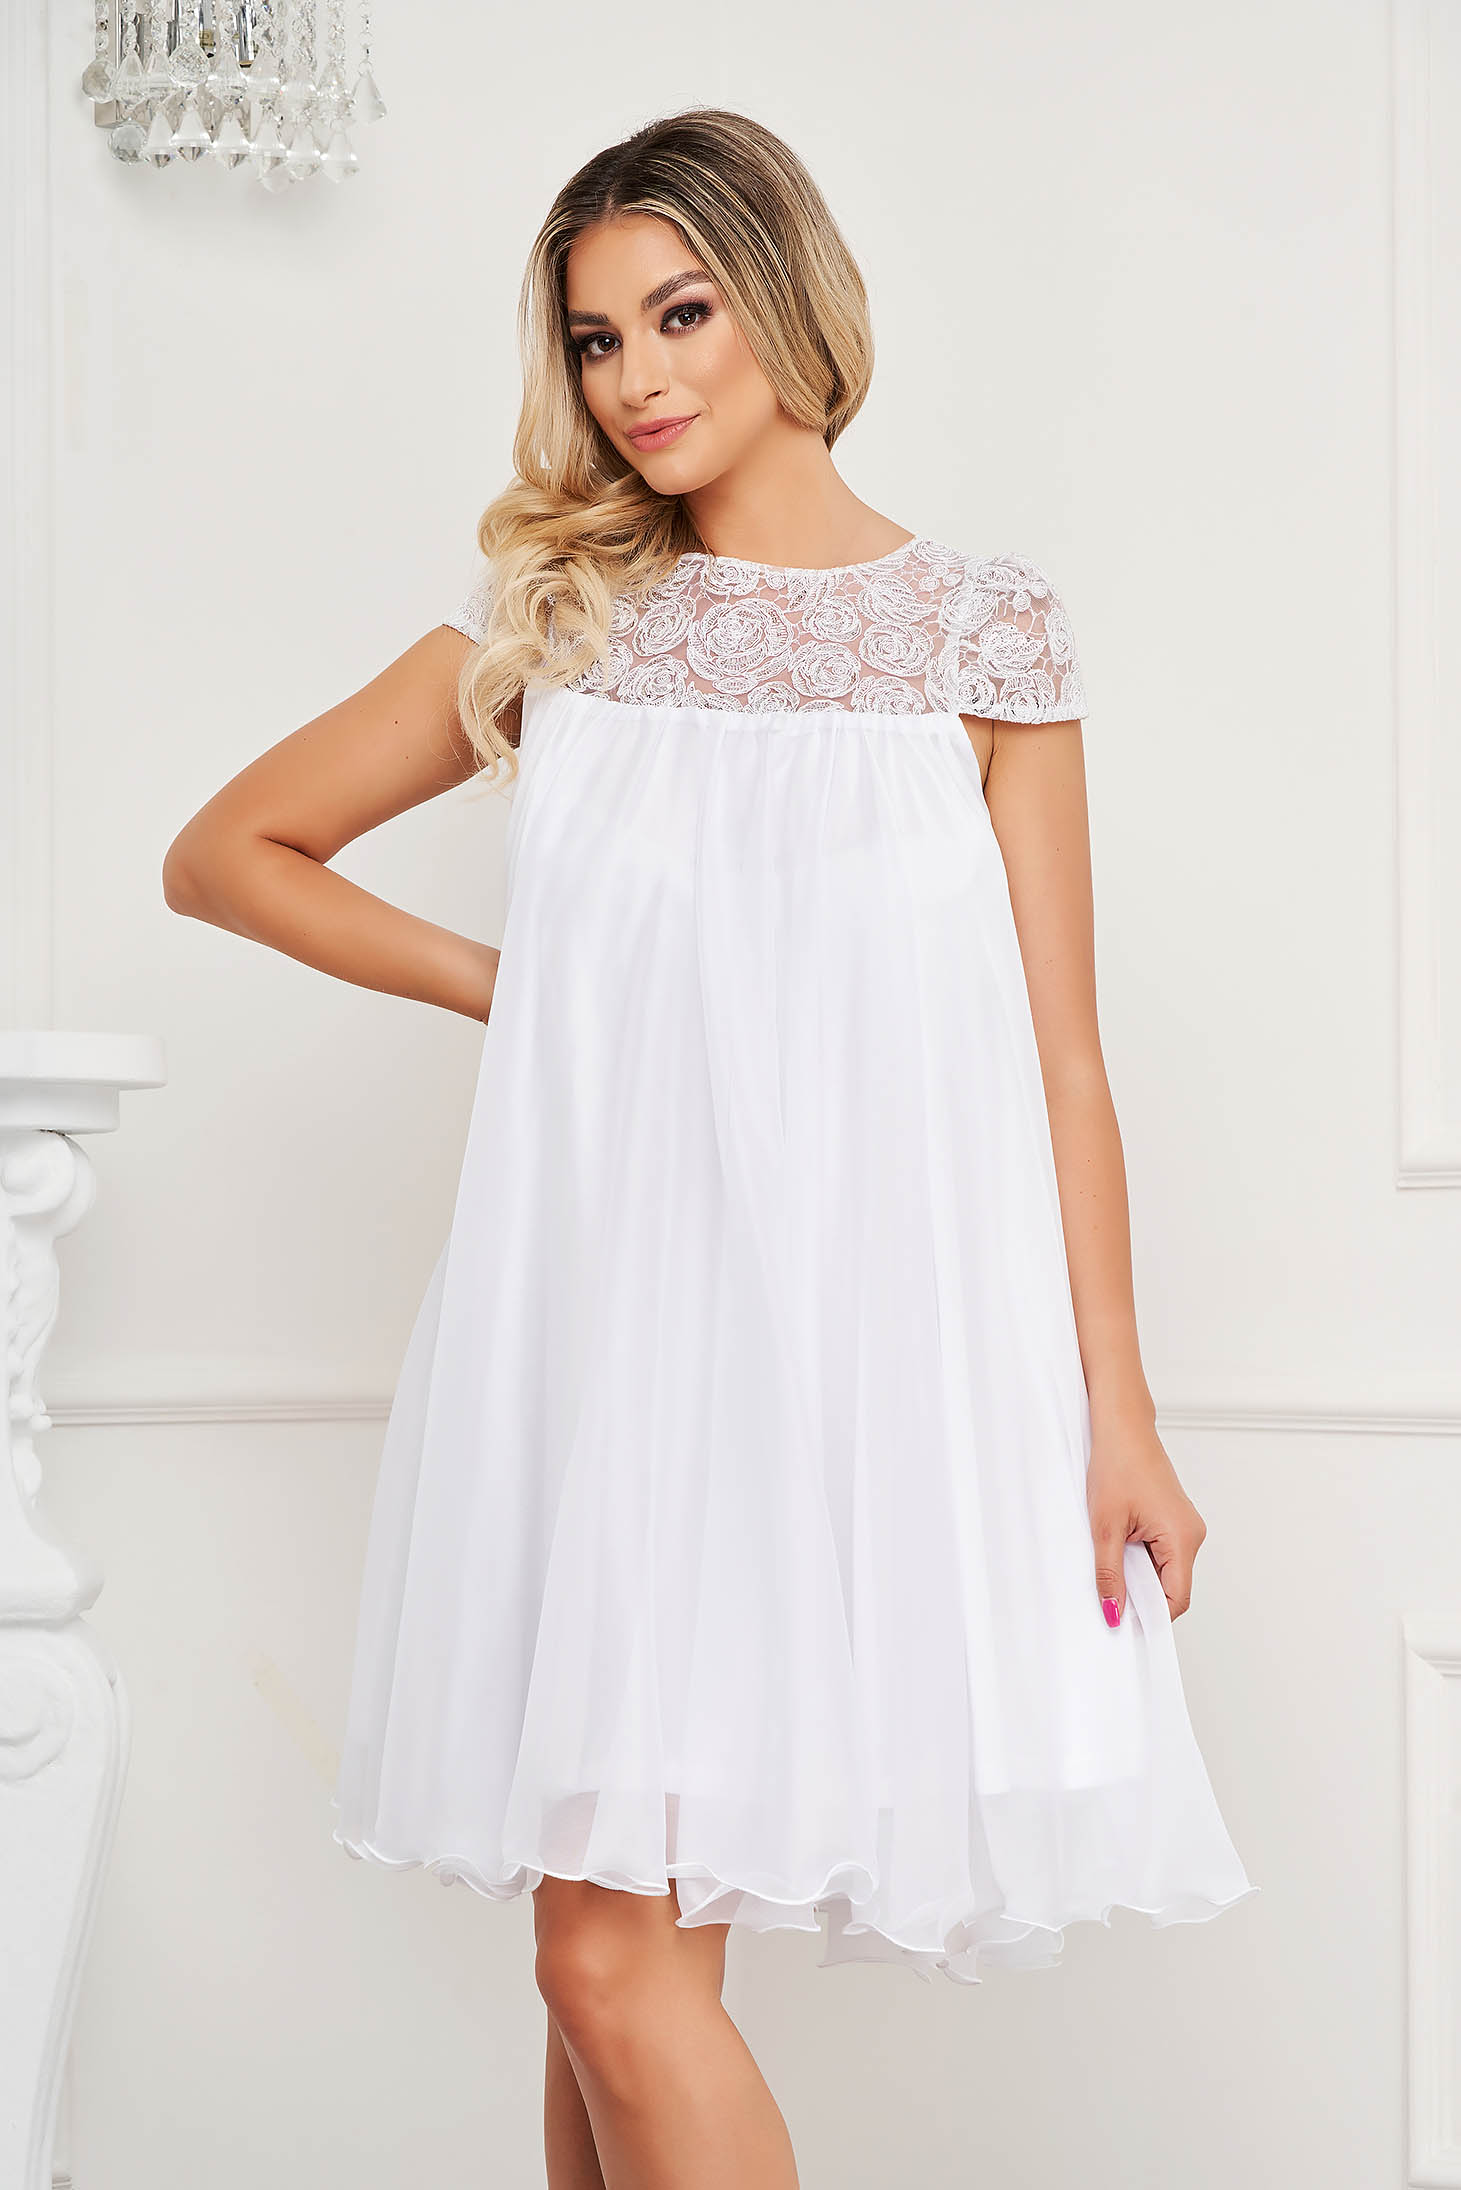 White dress from veil fabric occasional with lace details with crystal embellished details loose fit